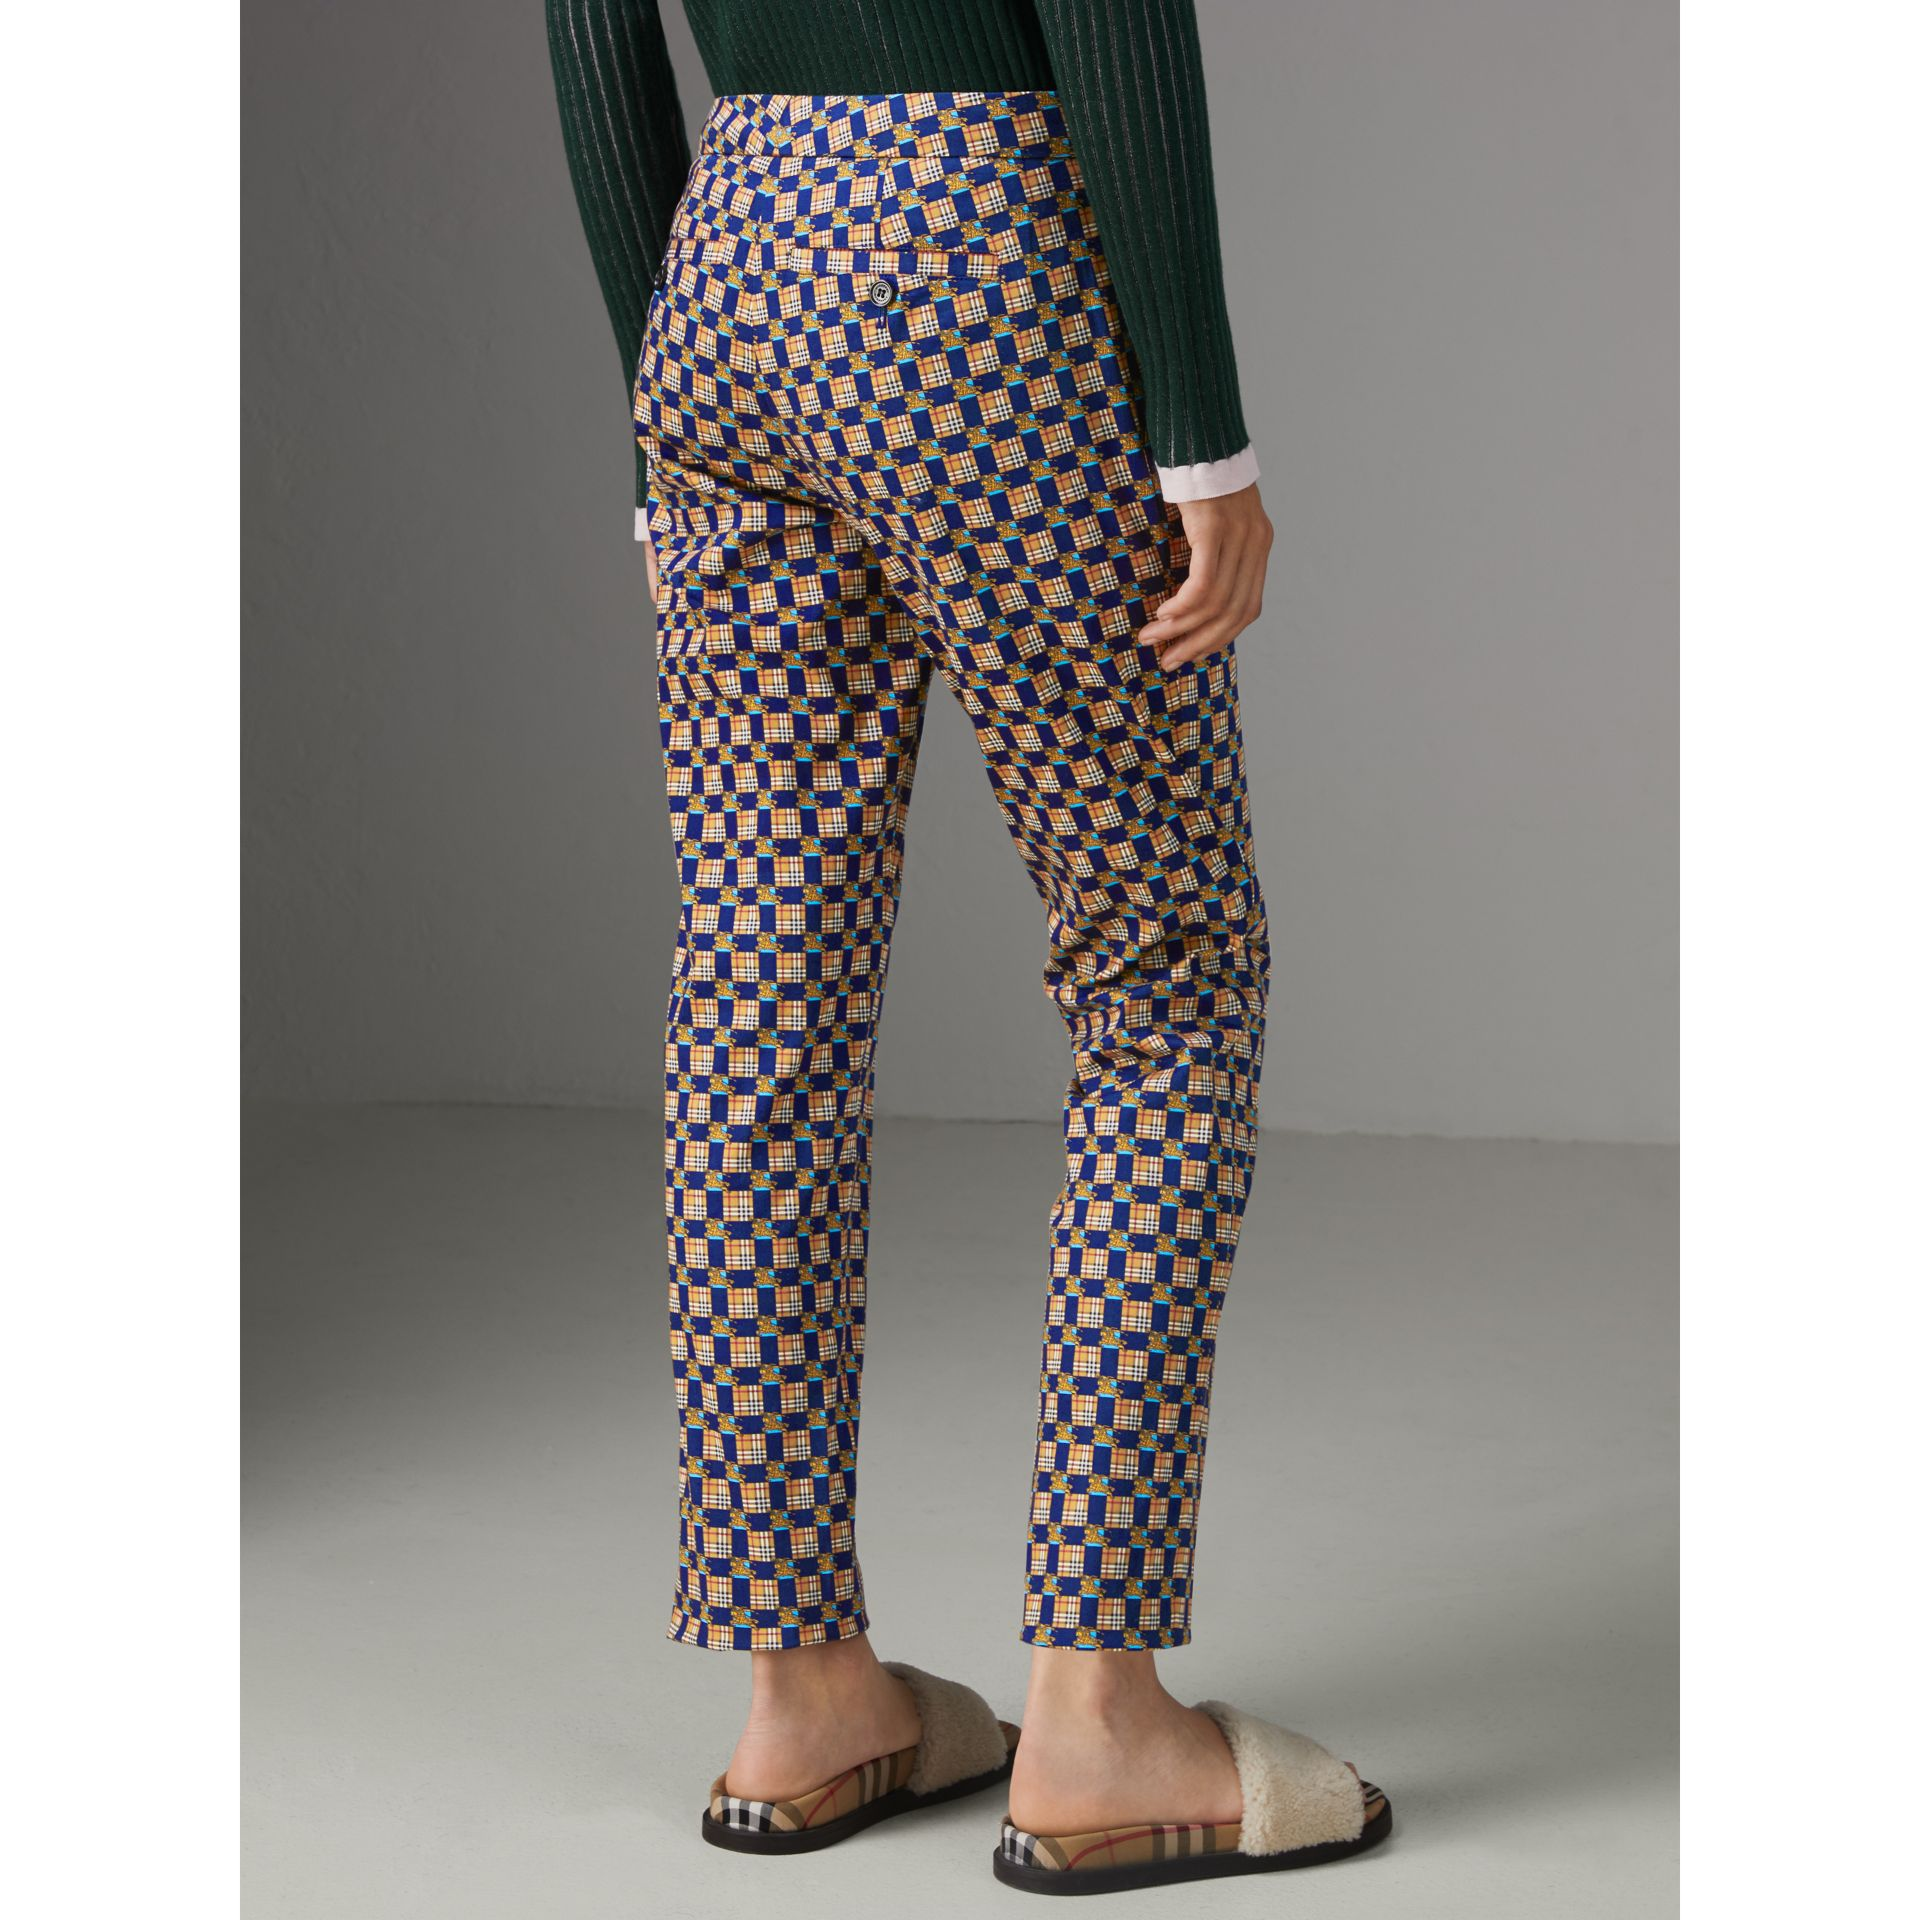 Tiled Archive Print Stretch Cotton Cigarette Trousers in Navy - Women | Burberry - gallery image 2